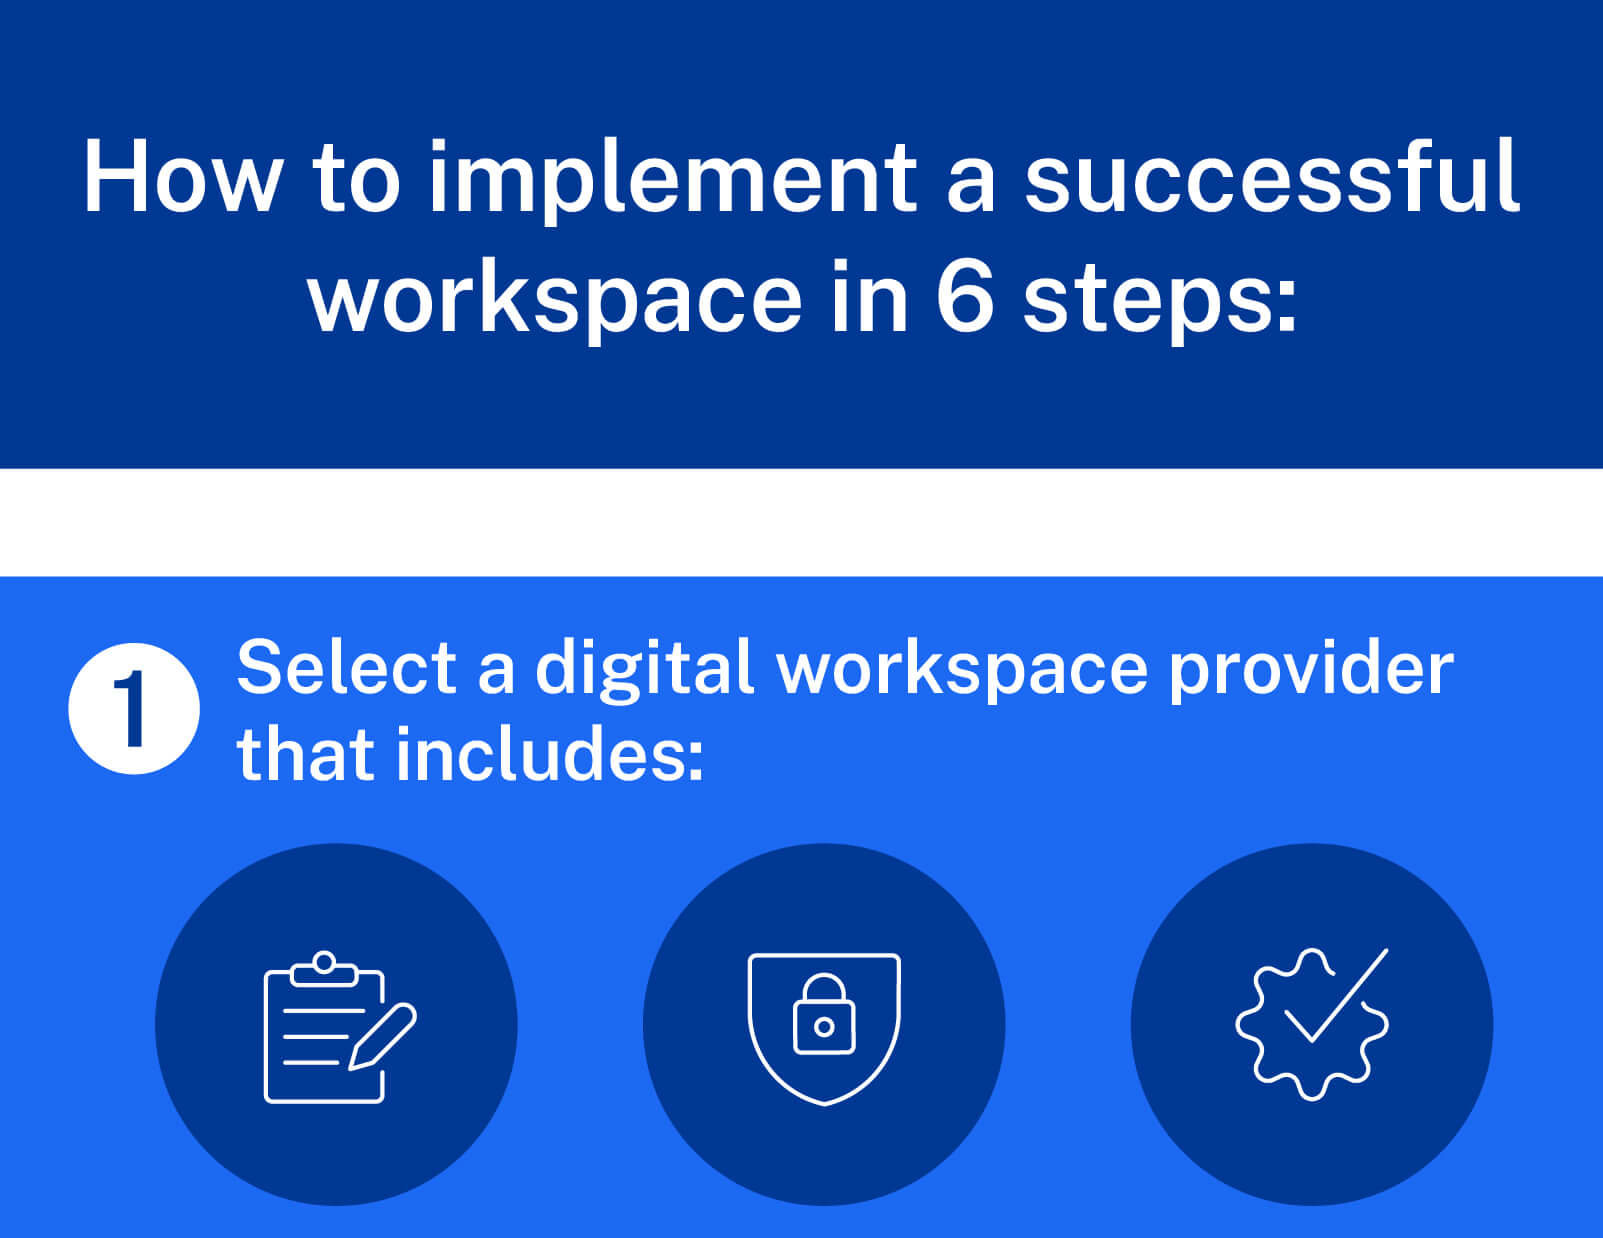 Infographic with 6 steps to implement a successful workspace.